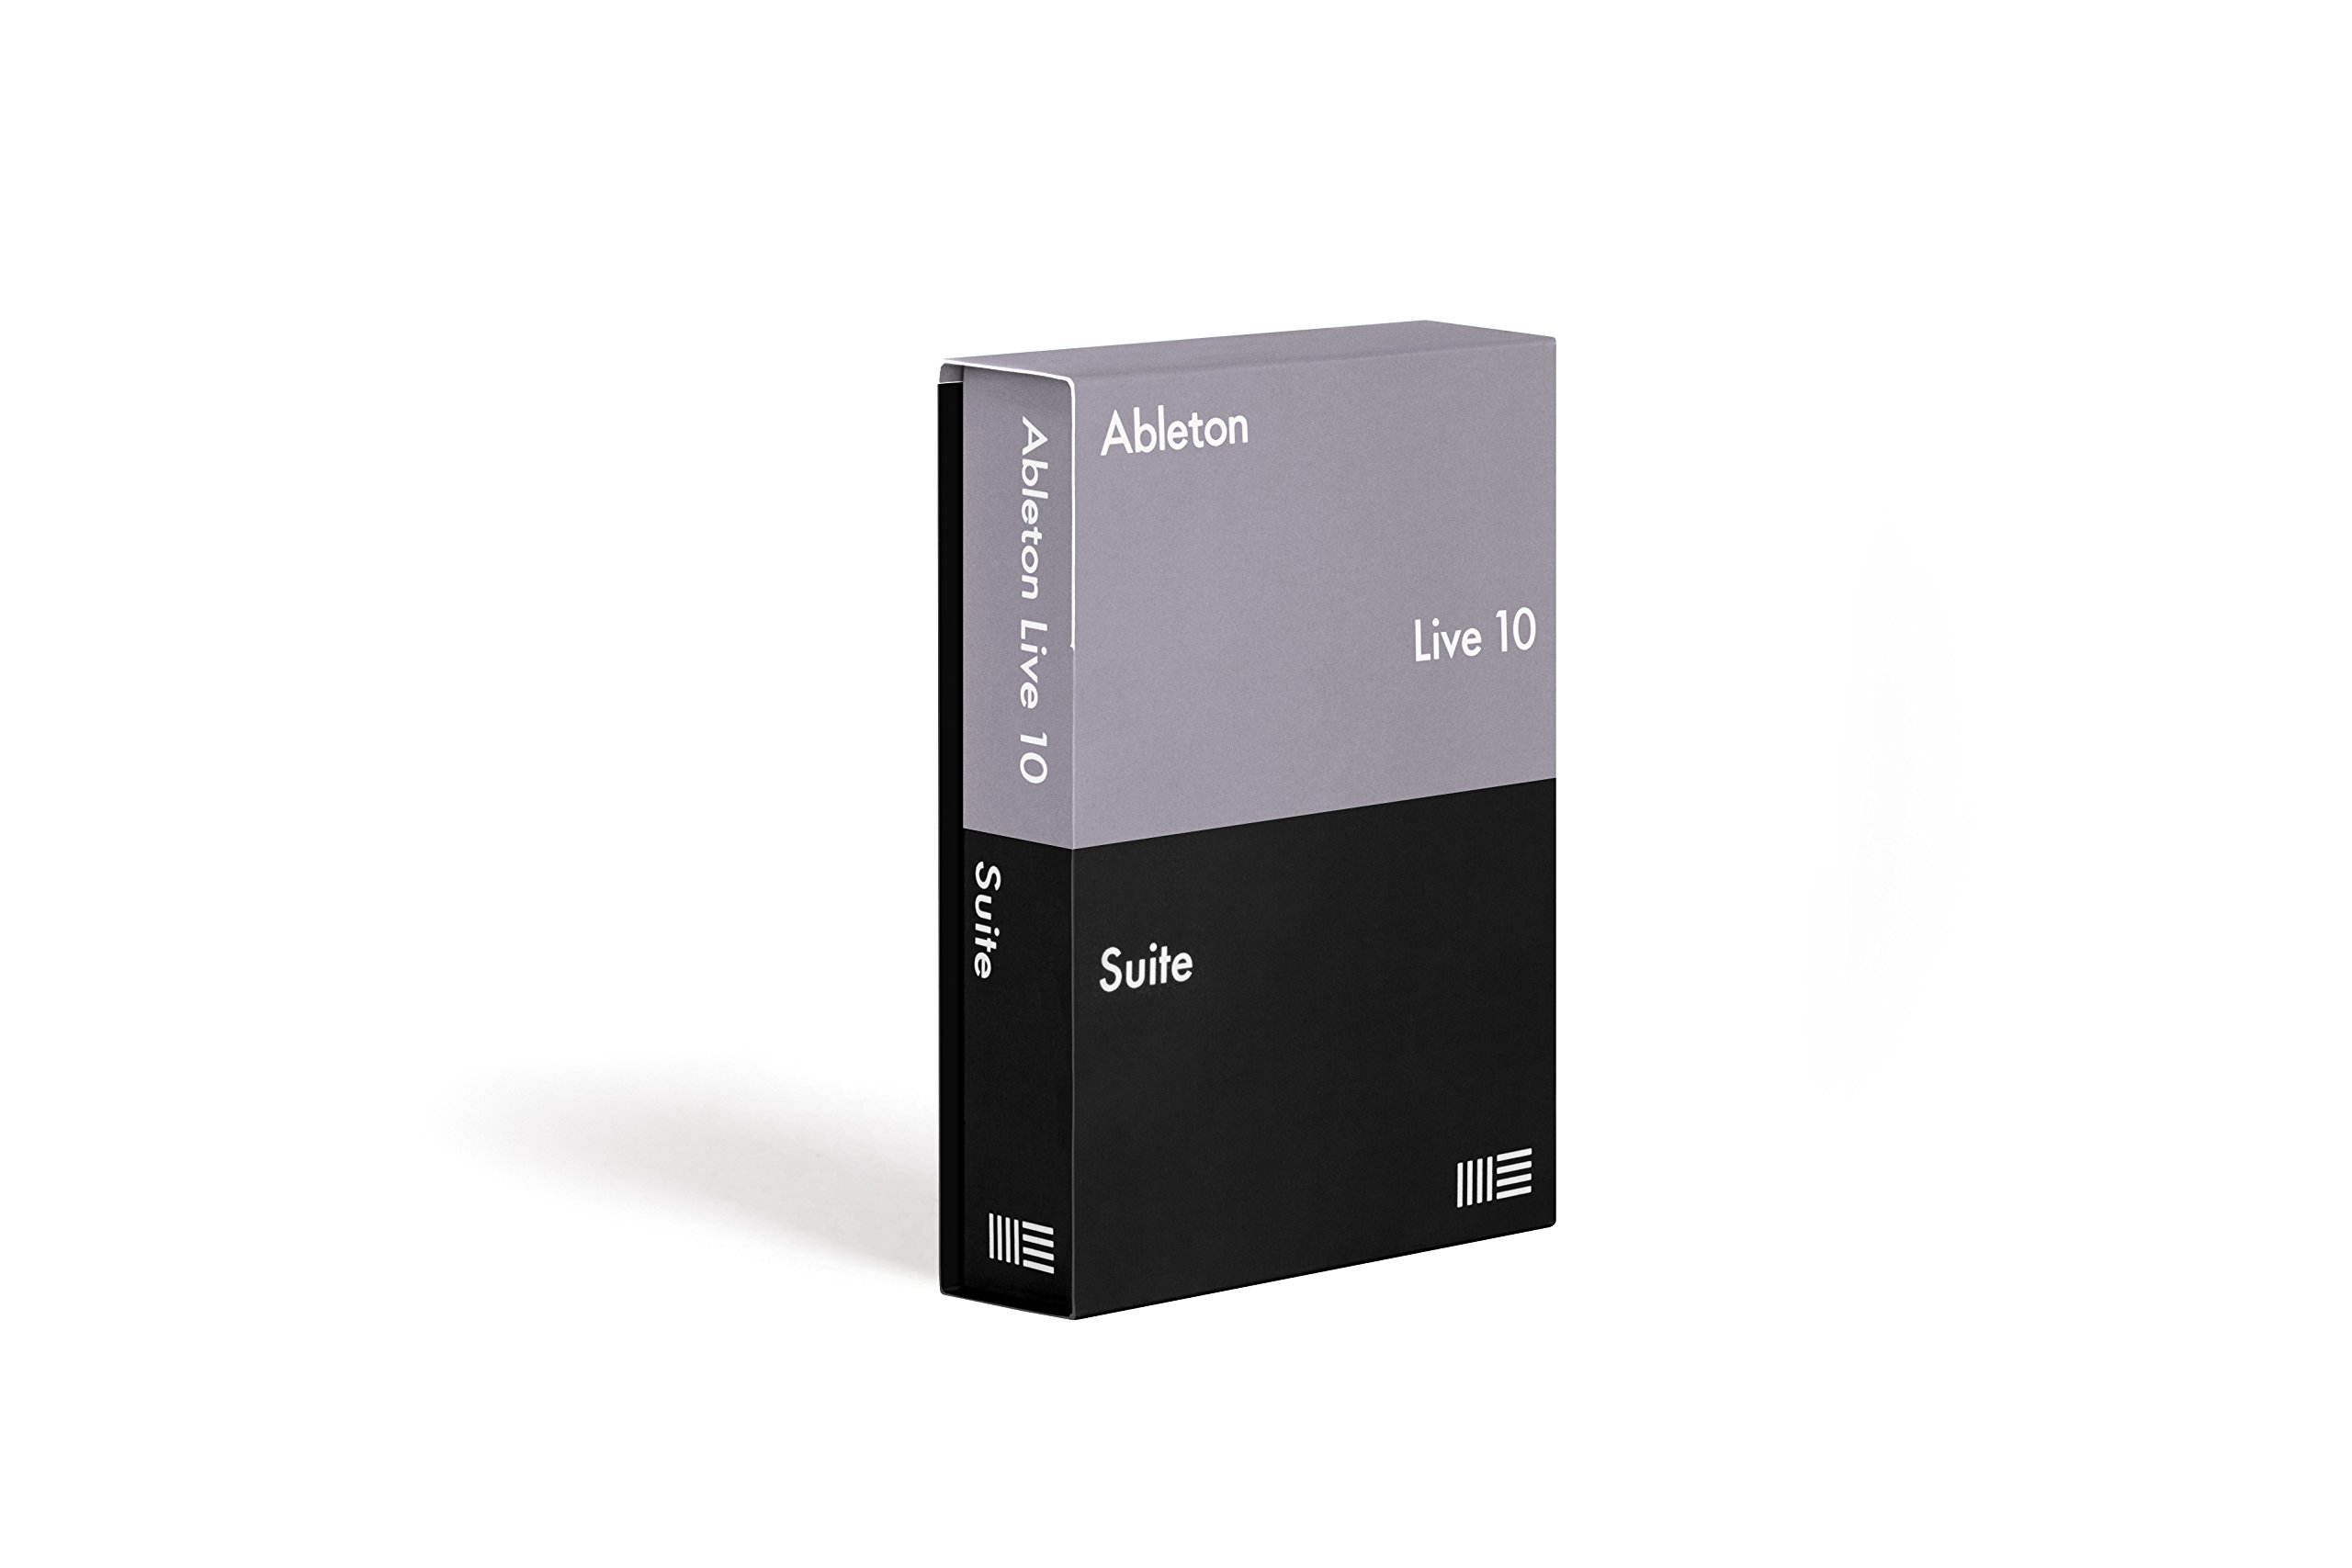 Ableton Live 10 Suite Multitrack Recording Software by Ableton